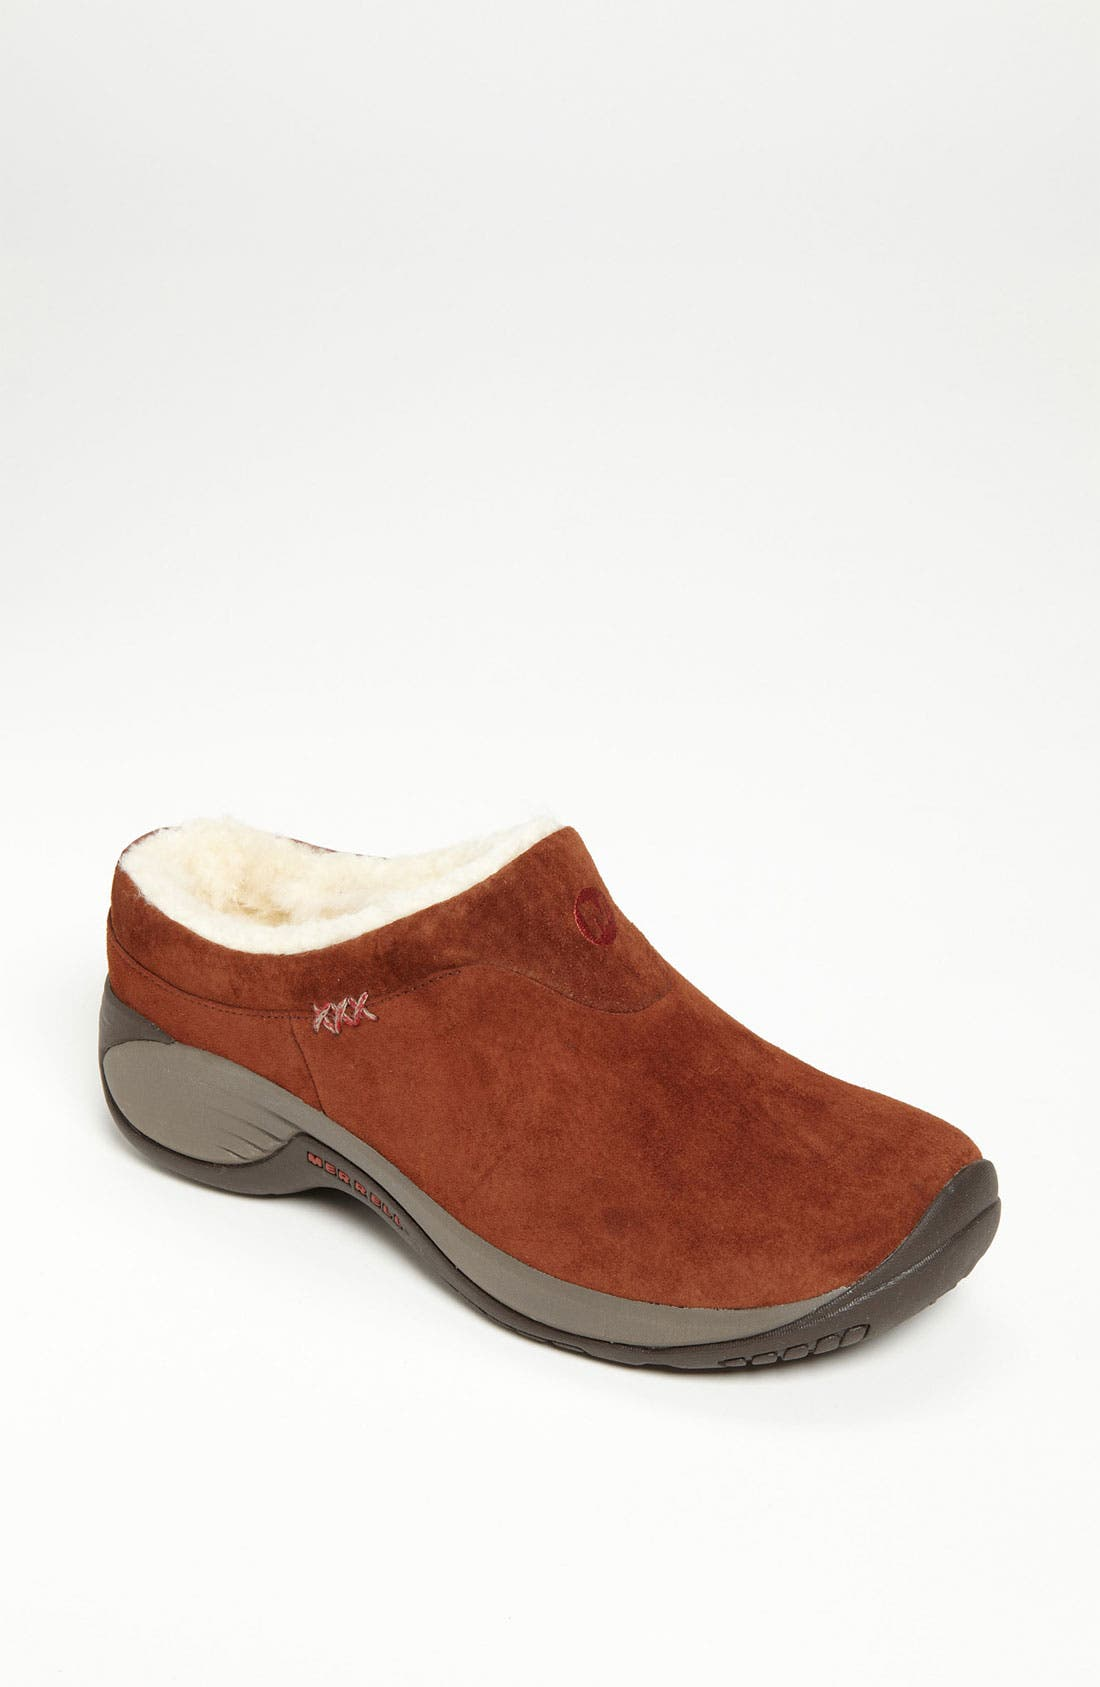 Alternate Image 1 Selected - Merrell 'Encore Ice' Mule (Women)